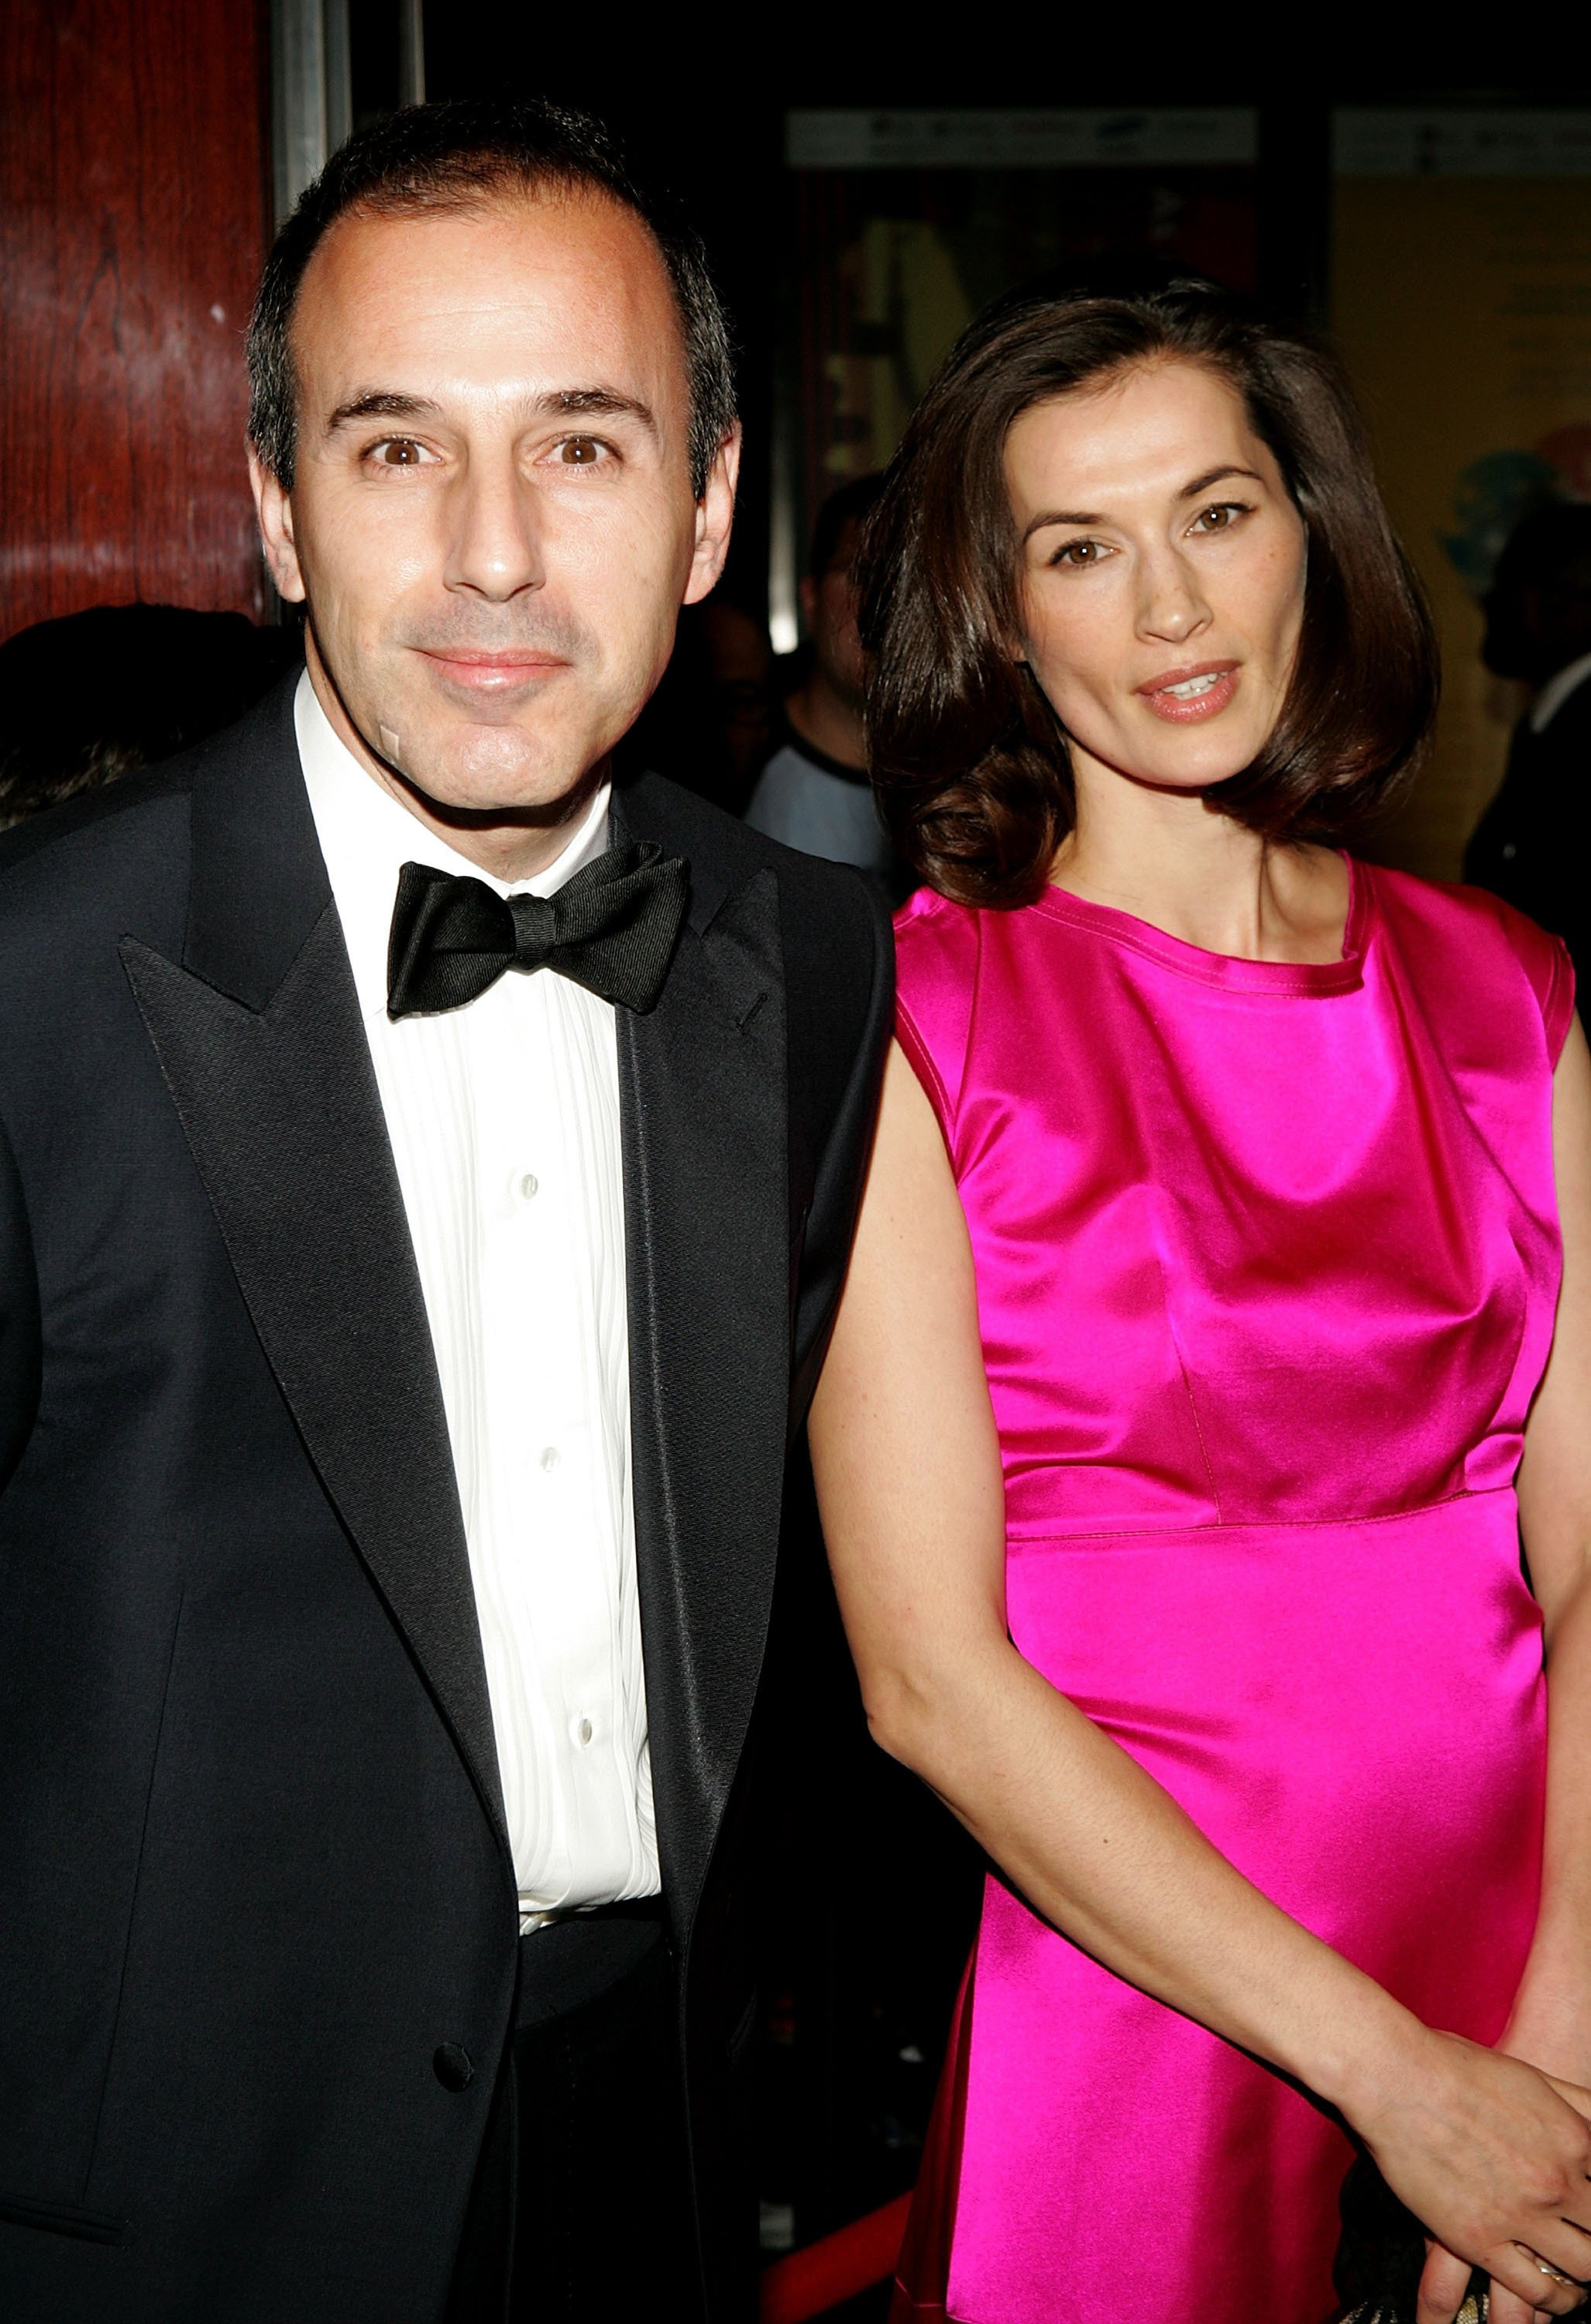 """Matt Lauer and wife Annette Roque arrive for Time Magazine Celebrates New """"Time 100"""" list of Most Influential People In The World.   Source: Getty Images"""